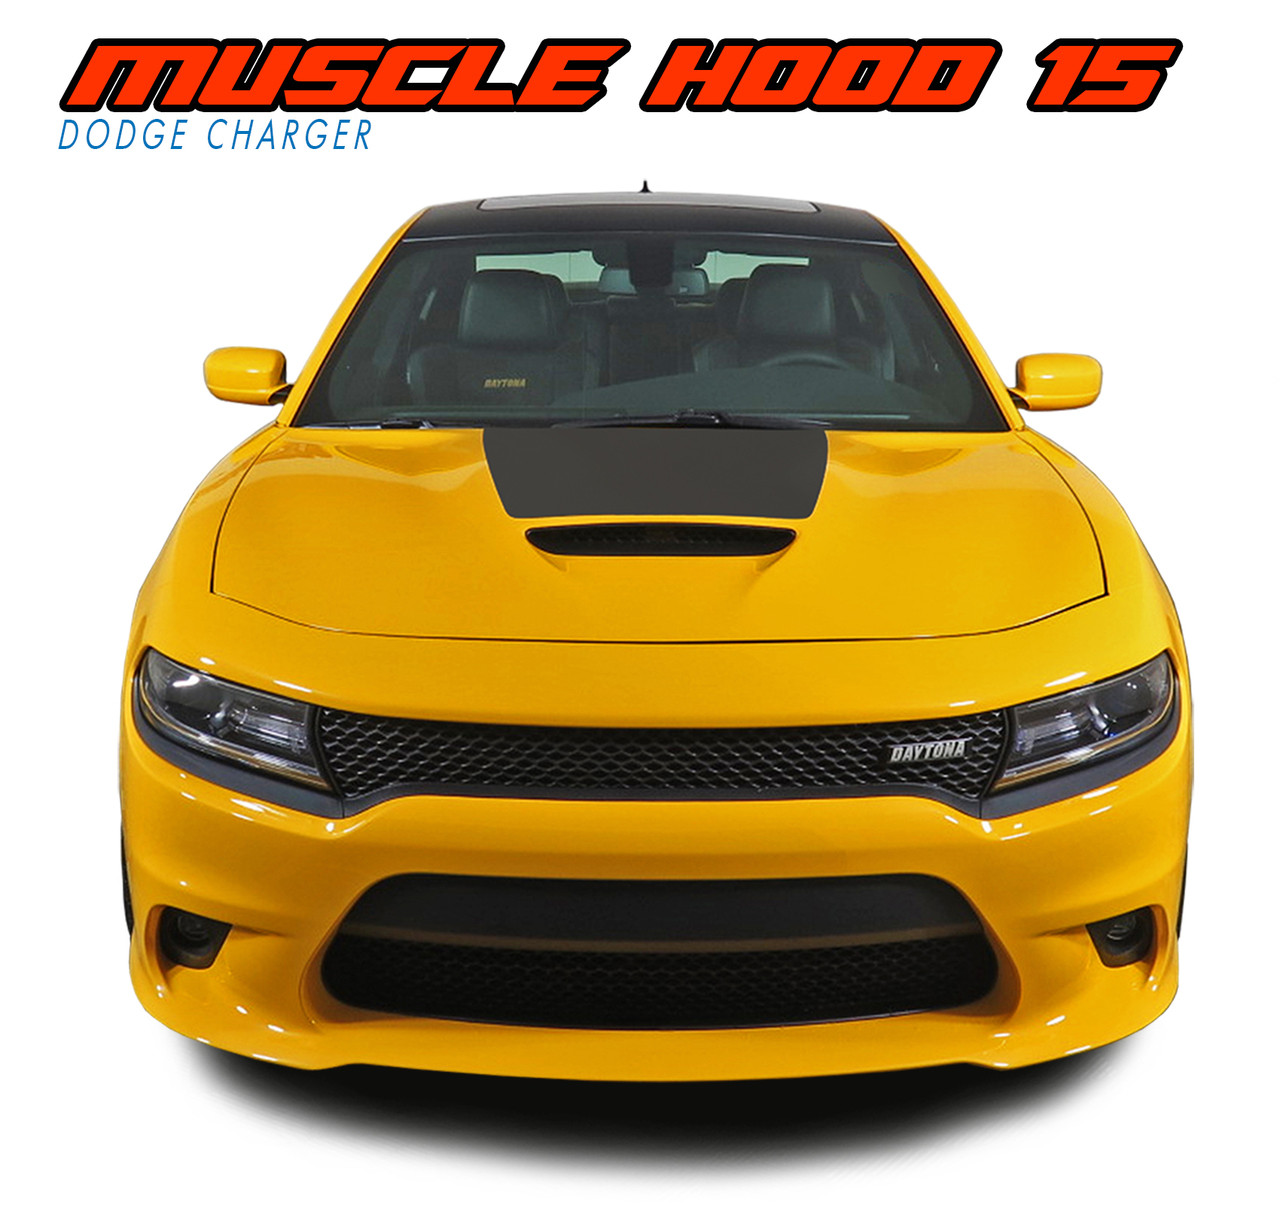 2018 dodge hemi. simple 2018 muscle hood 15  2015 2016 2017 2018 dodge charger hemi daytona rt srt 392  hellcat mopar blackout style center hood vinyl graphics decals kit vgp4968 to dodge hemi a